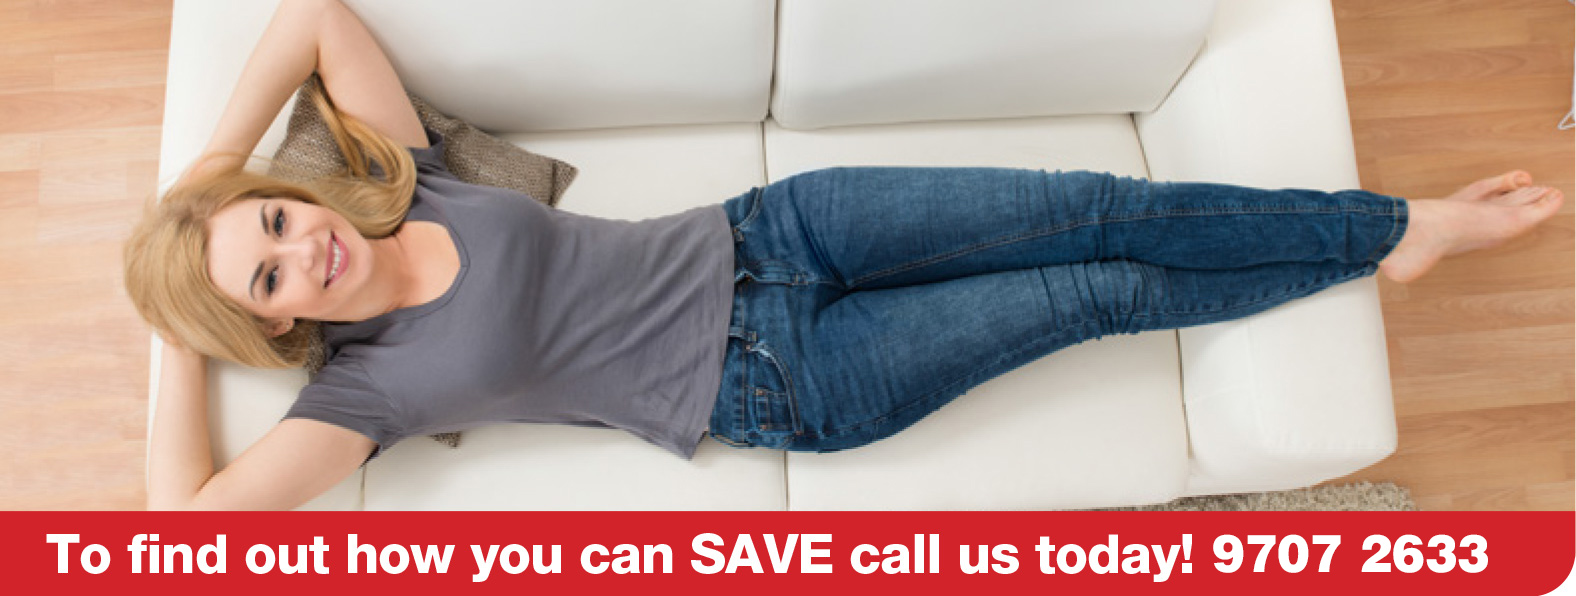 save call us today